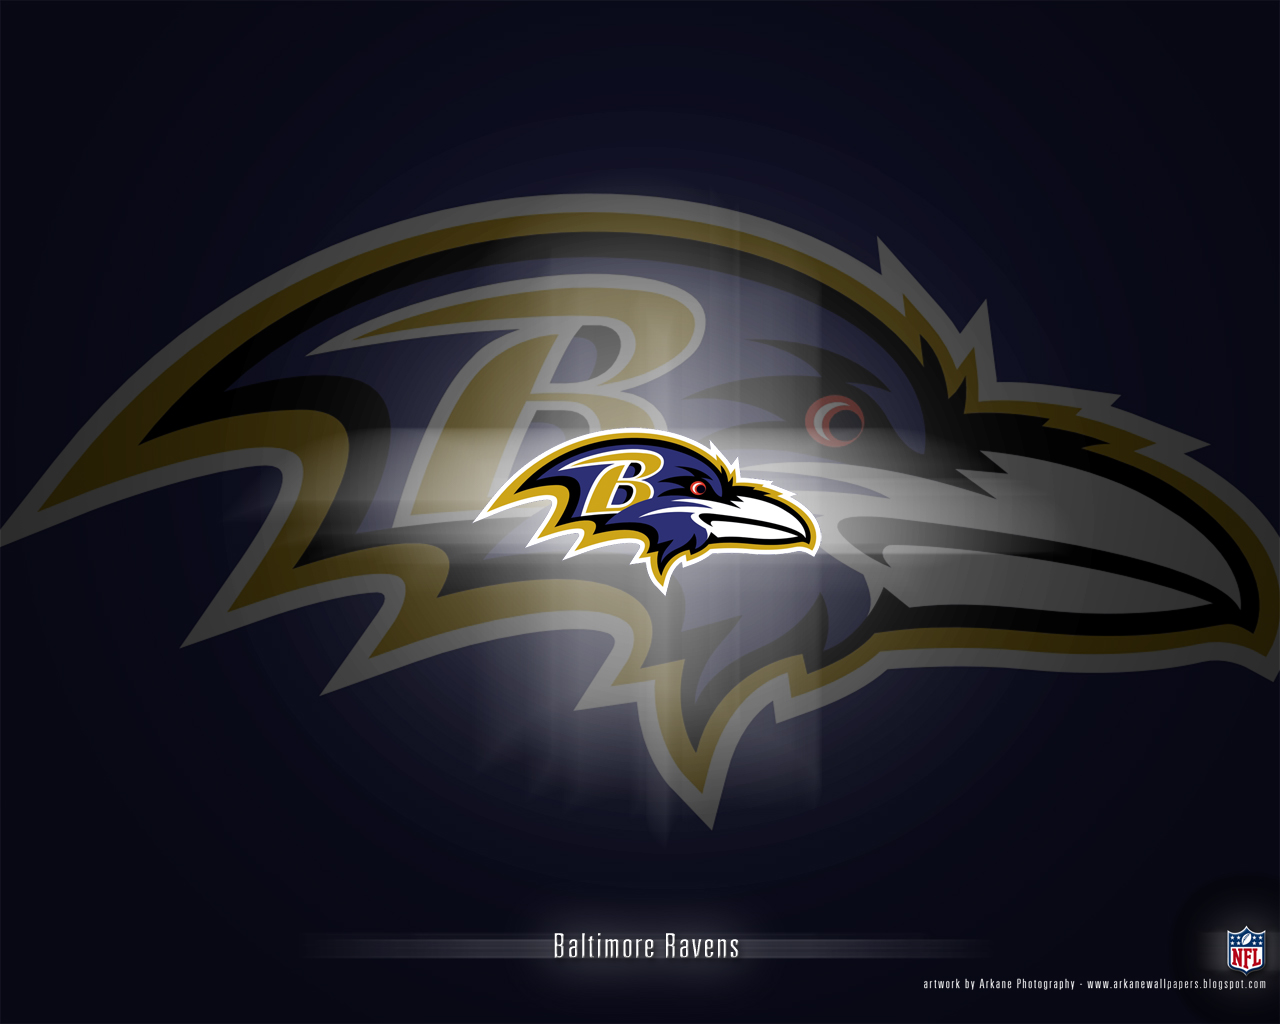 Baltimore Ravens wallpaper HD images Baltimore Ravens wallpapers 1280x1024